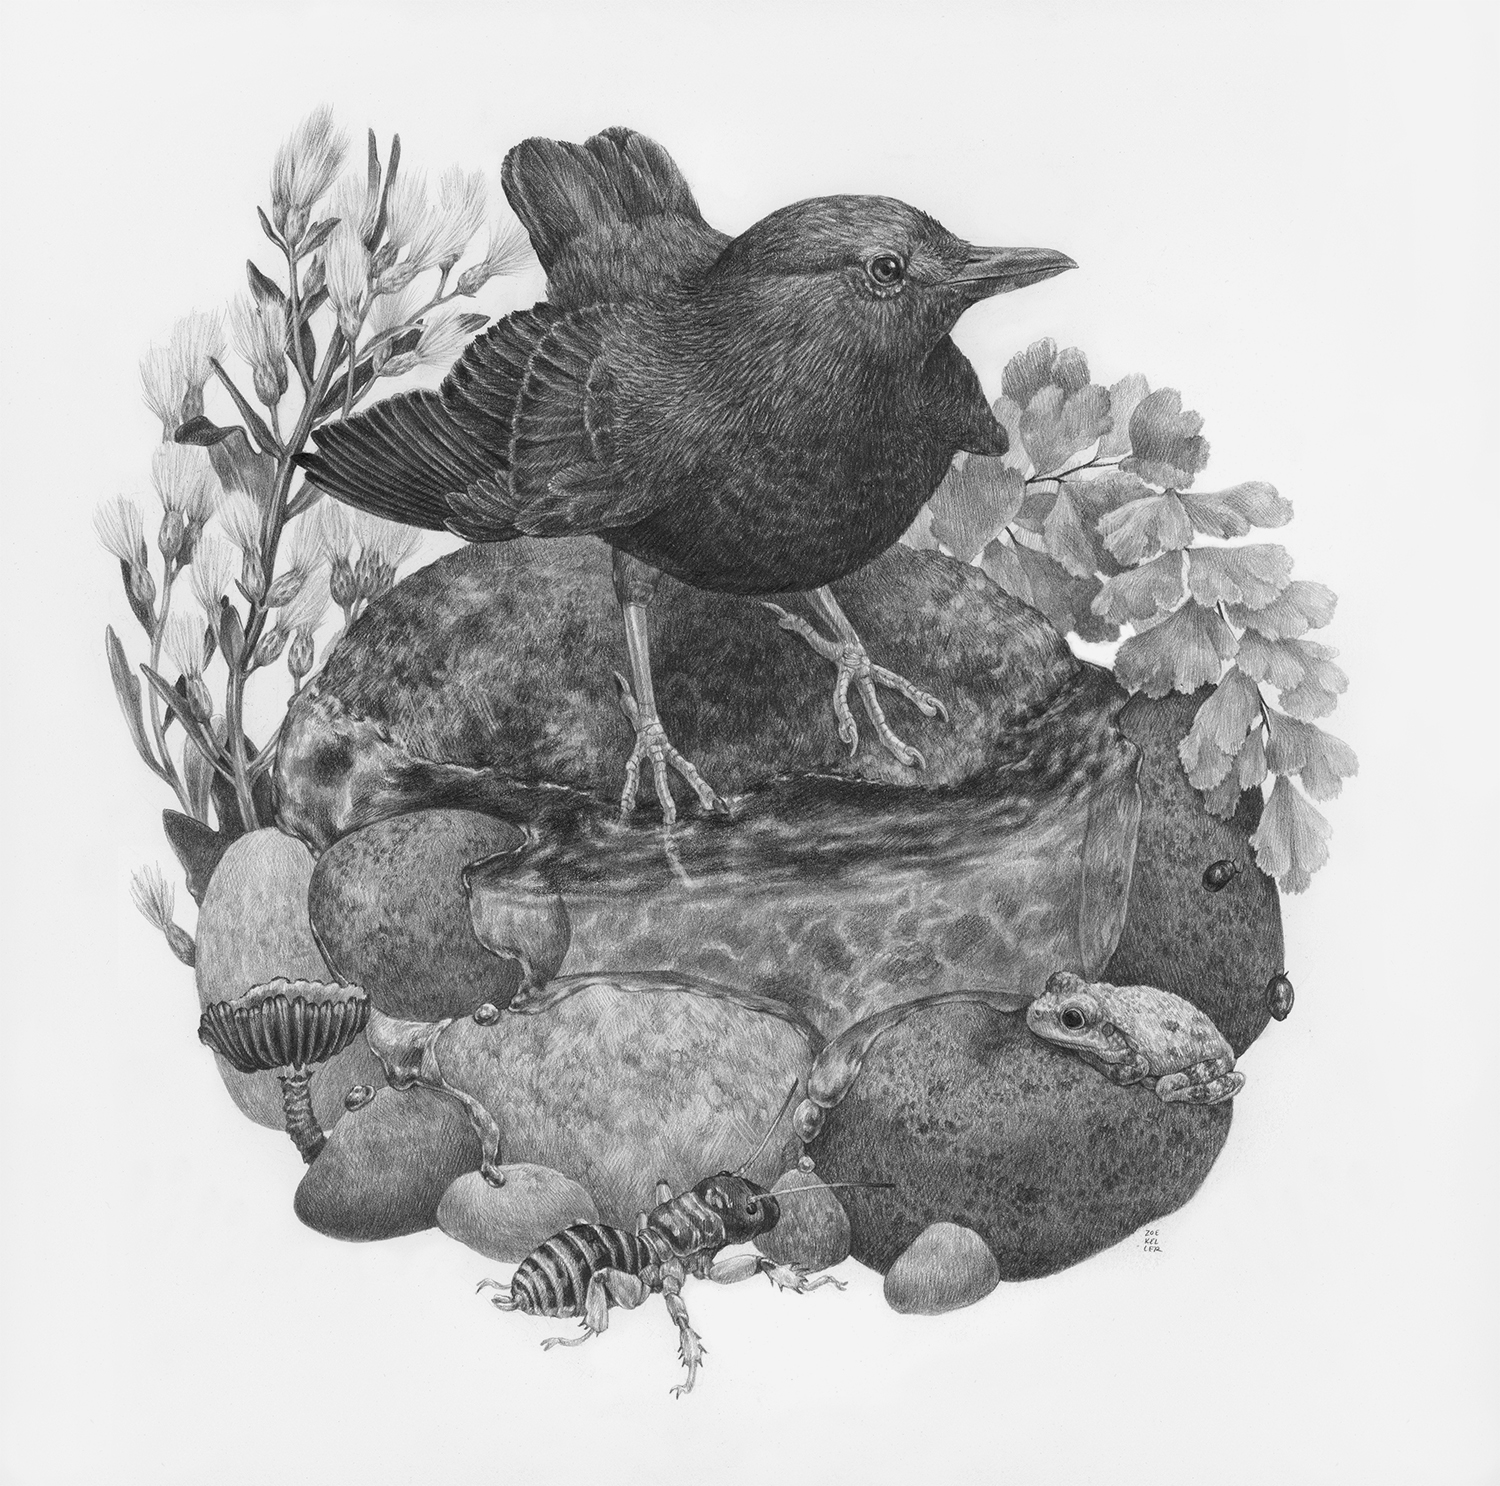 "Riverside Walk, 12"" x 12"", Graphite on paper, 2019  Click here to purchase through Antler Gallery   SPECIES DEPICTED  American Dipper, Canyon Tree Frog, Jerusalem Cricket, Maidenhair Fern, Coyote Bush, and a small unidentified gilled mushroom"